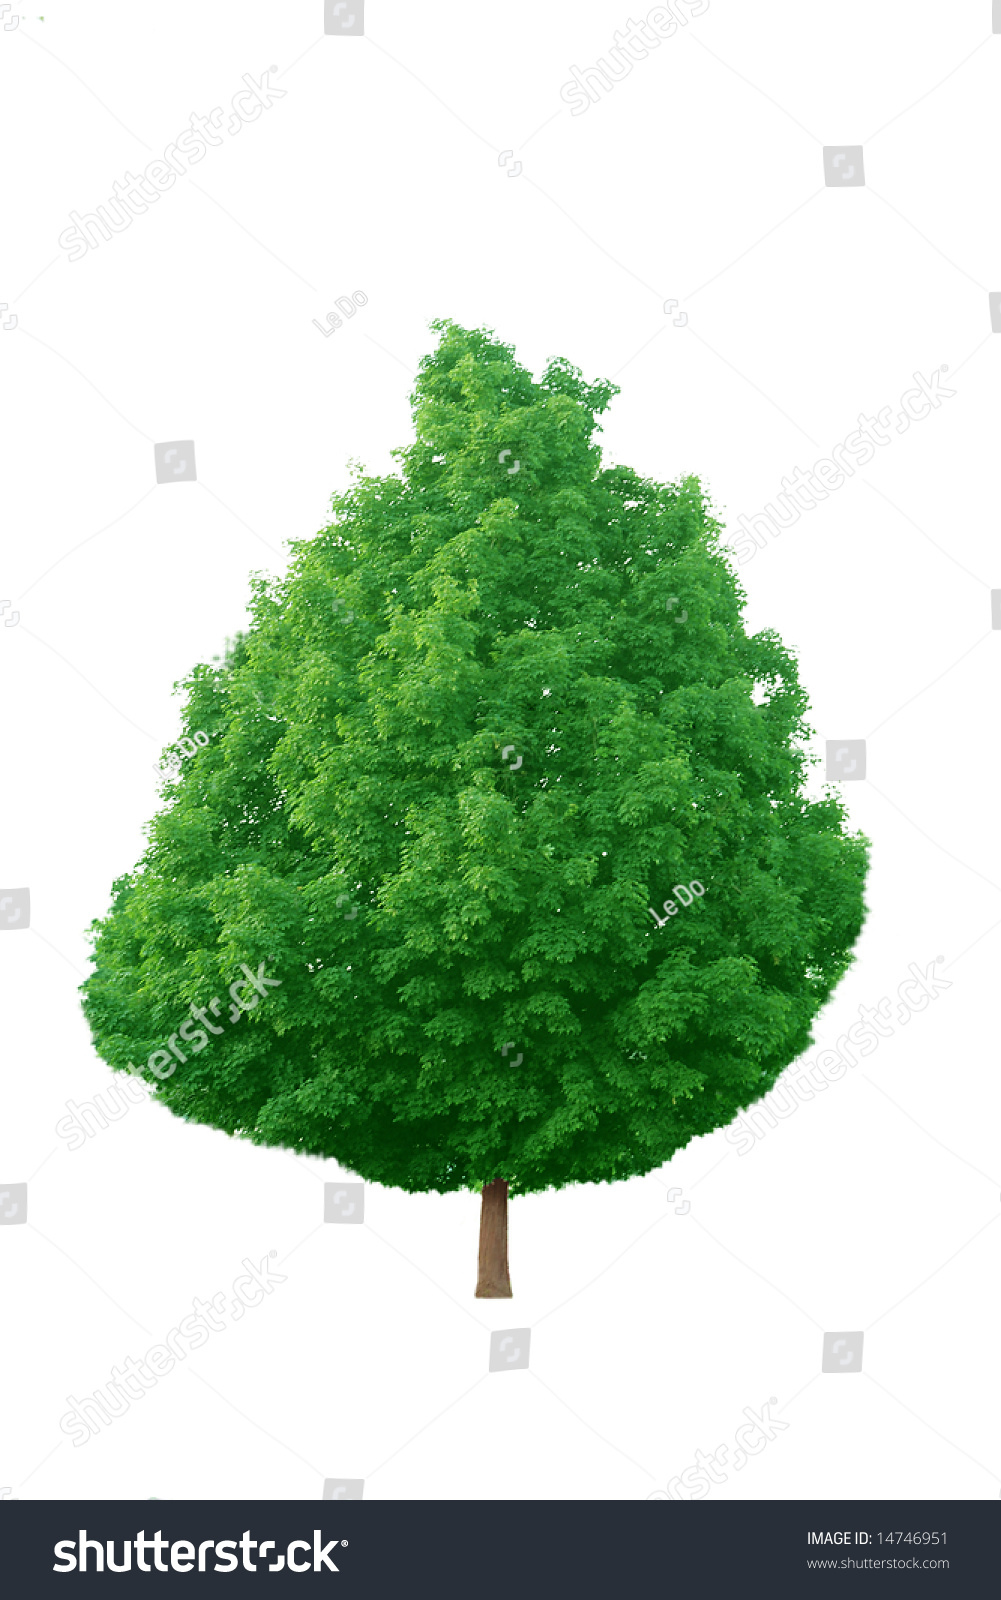 maple latin singles Leaves may be simple (a single leaf blade or lamina) or compound  the latin word for 'leaf', folium, is neuter in descriptions of a single leaf,.